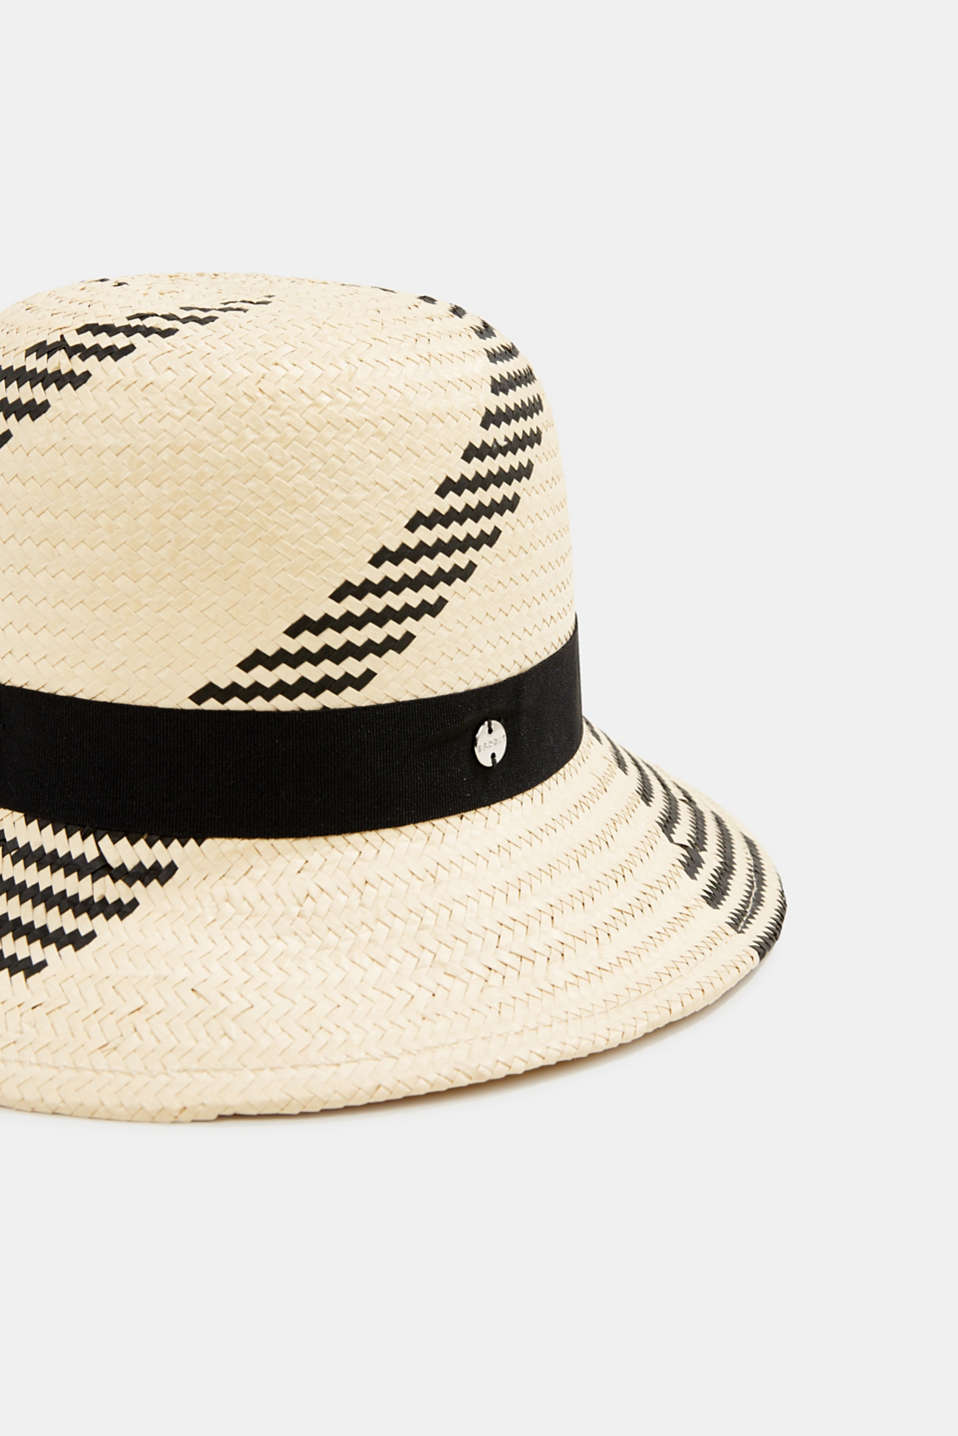 Hand-made straw sun hat, SAND, detail image number 1